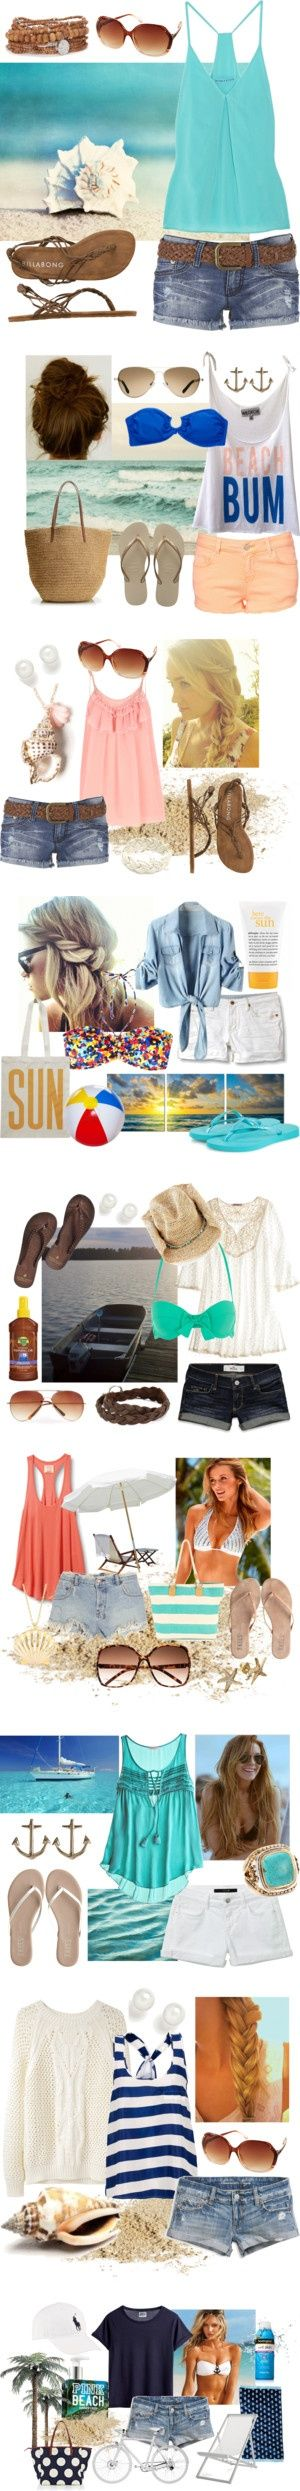 Sally Lee by the Sea Coastal Lifestyle Blog: Saturday Beach Style: Dreaming of Summer